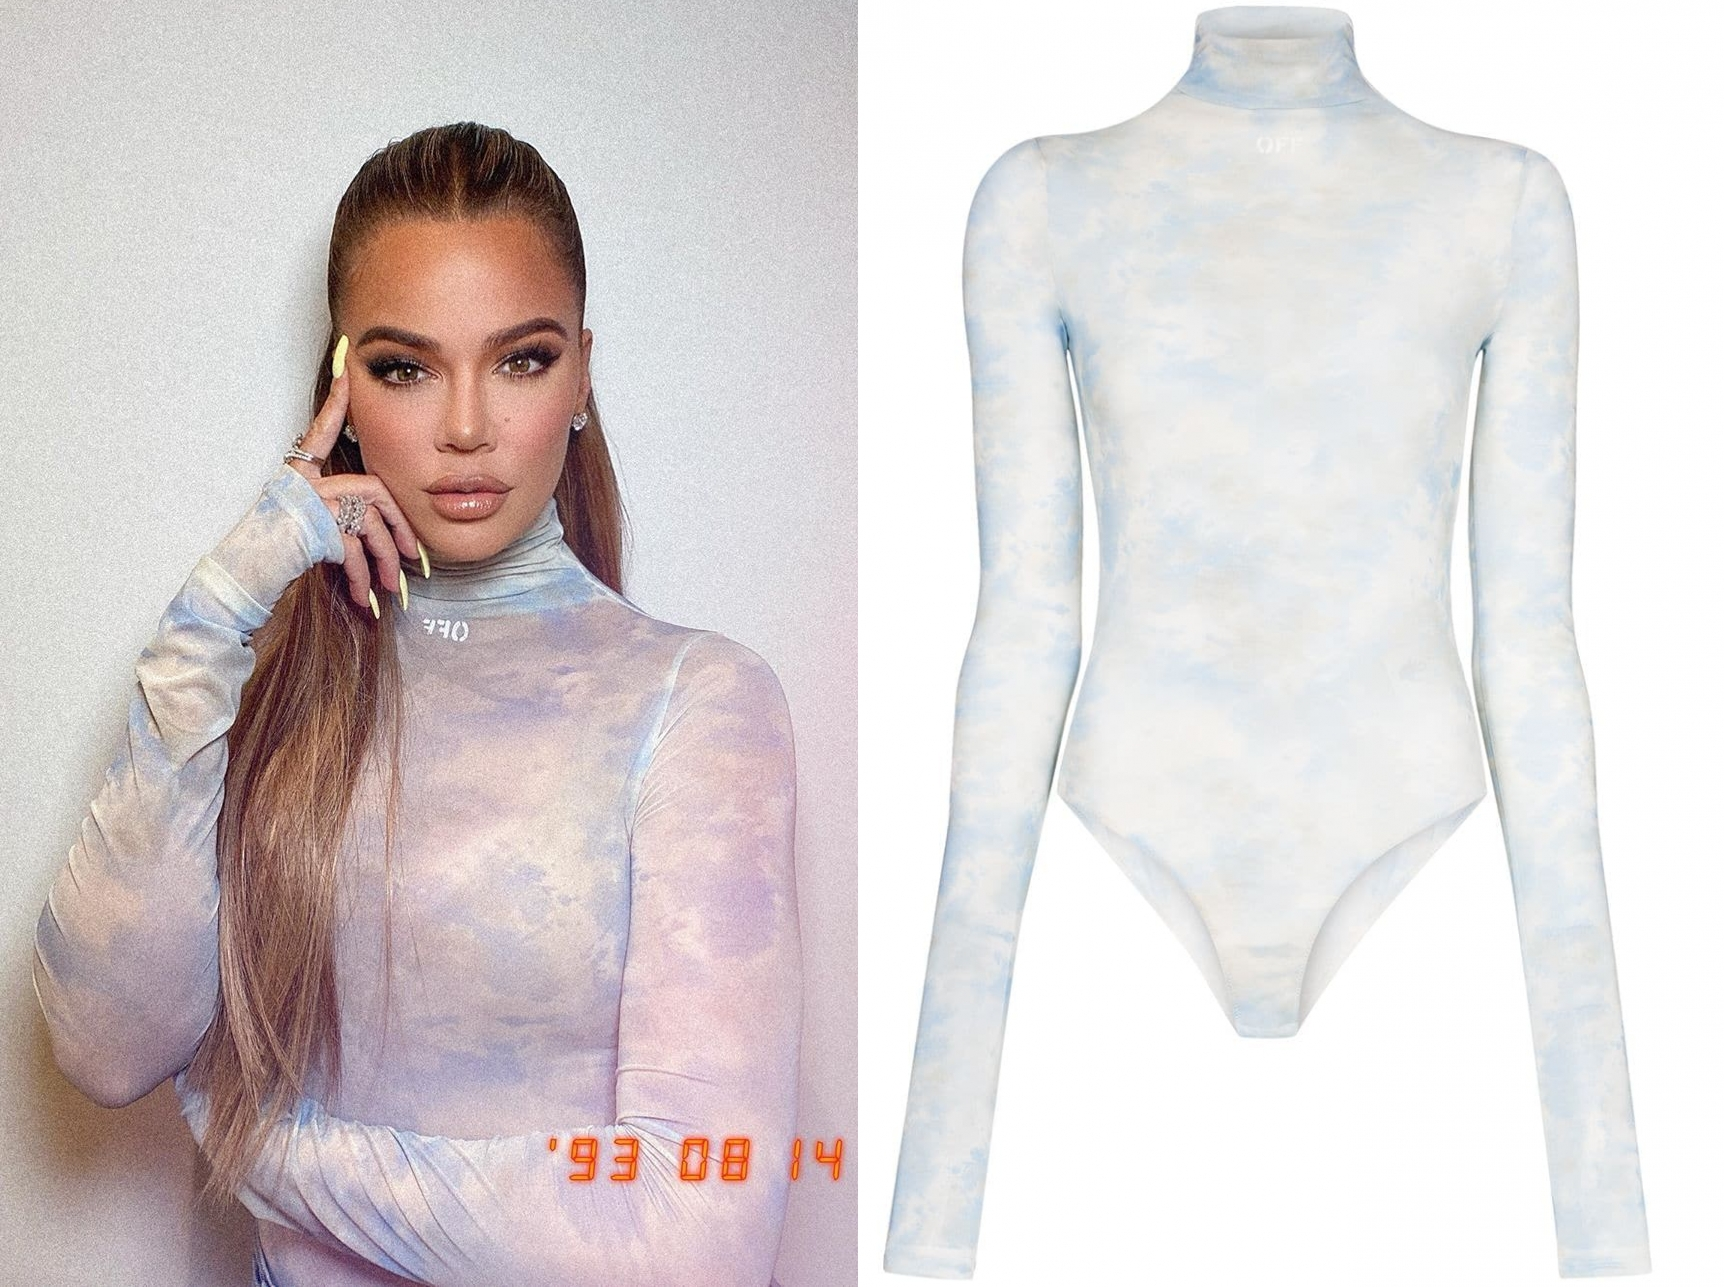 Khloe Kardashian rocking a Sheer silver light blue Offwhite bodysuit with a sheer material, extra long sleeves, brand logo and a turtleneck